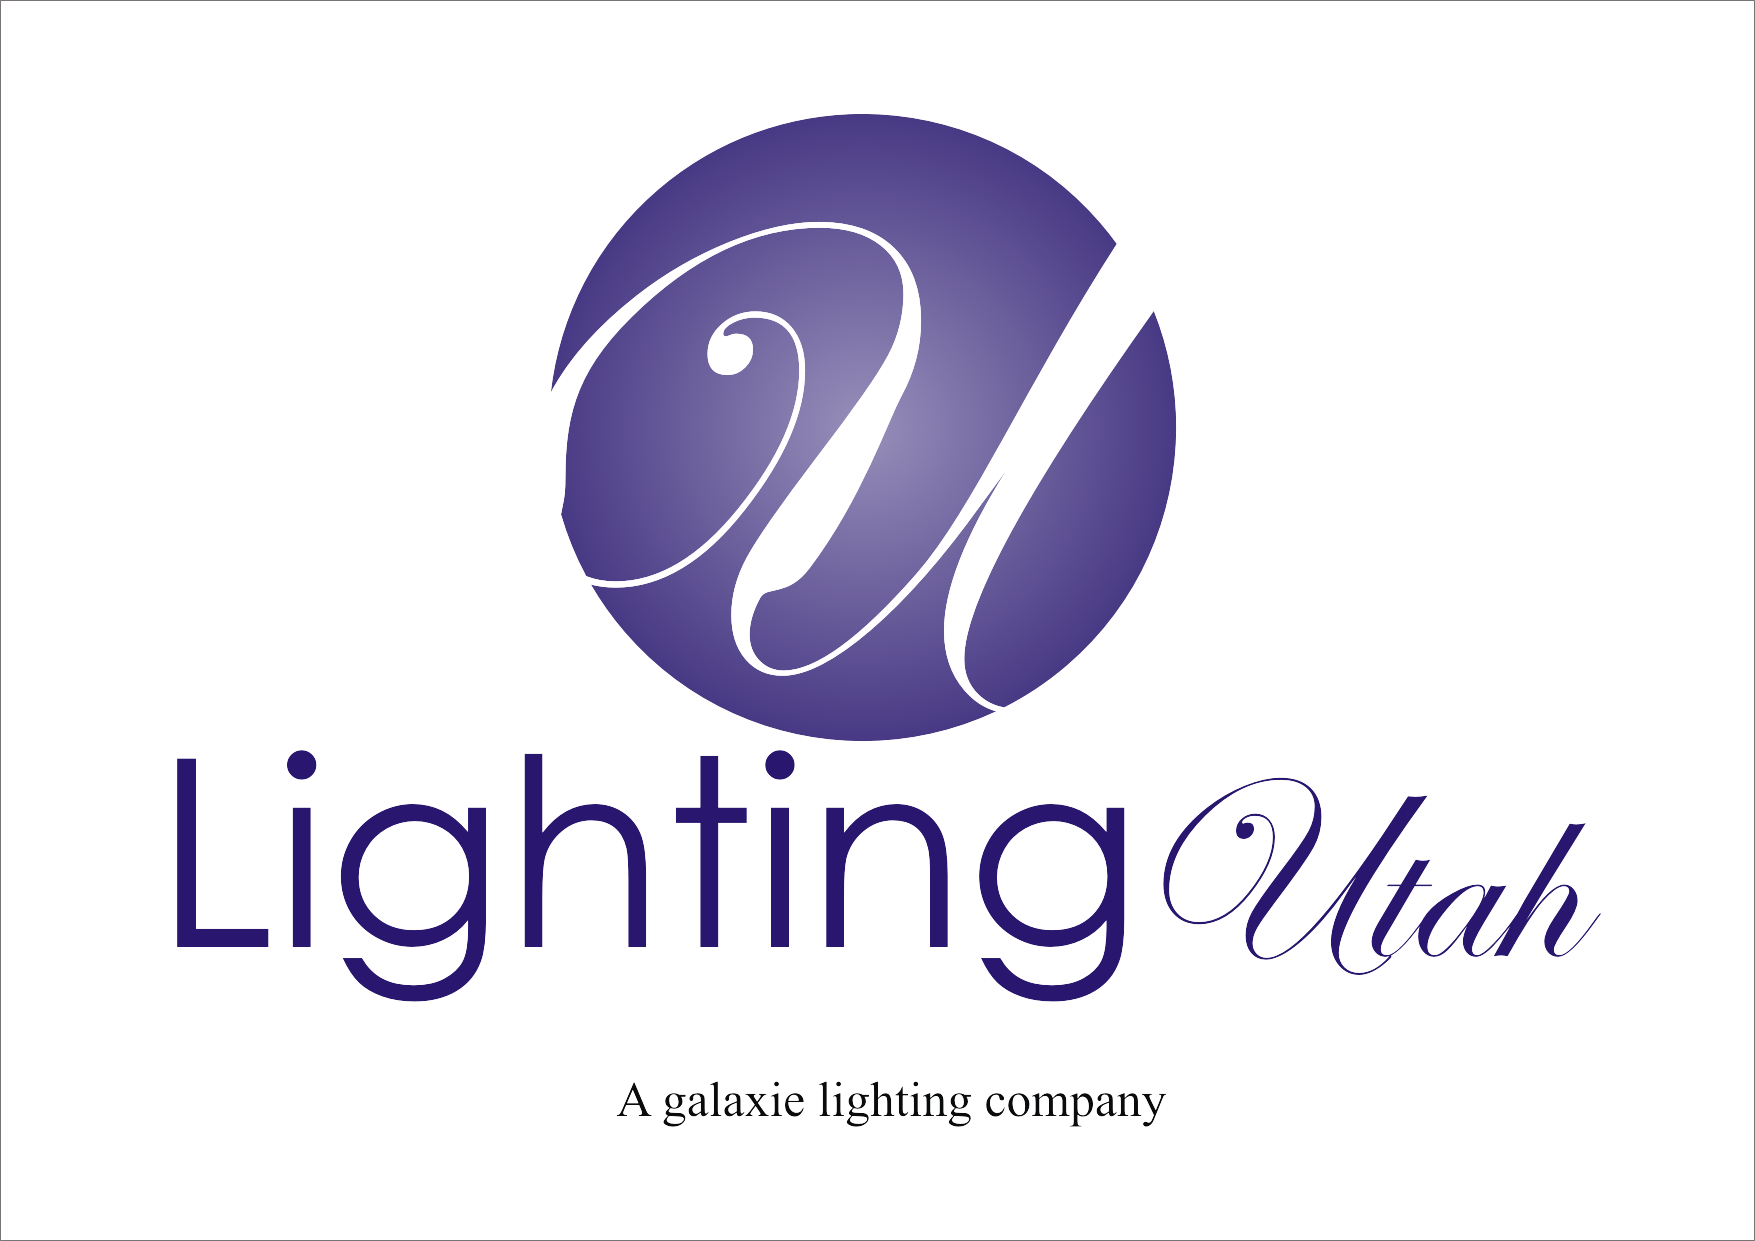 Logo Design by Russell You - Entry No. 99 in the Logo Design Contest Imaginative Logo Design for Lighting Utah. A Galaxie lighting company.